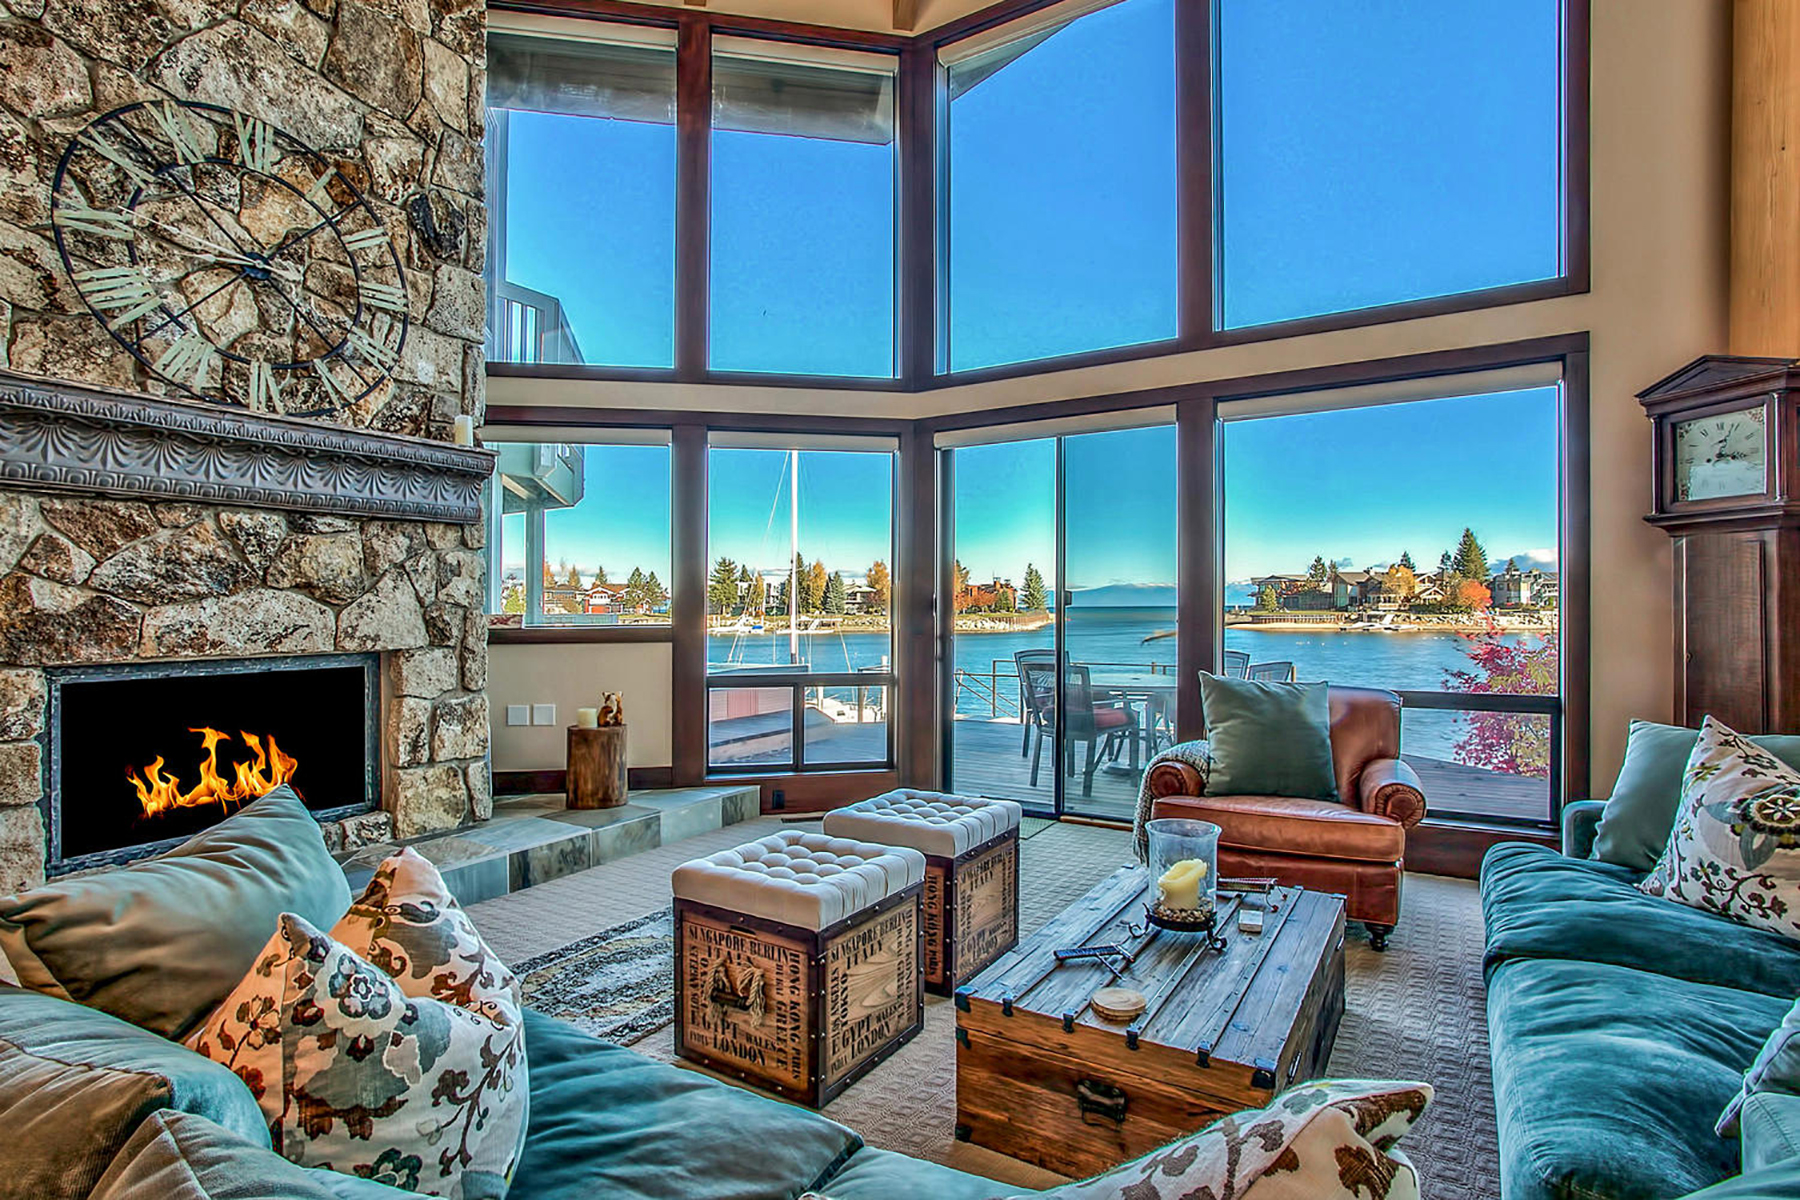 Single Family Homes for Active at 2041 Aloha Drive, South Lake Tahoe, CA 2041 Aloha Drive South Lake Tahoe, California 96150 United States